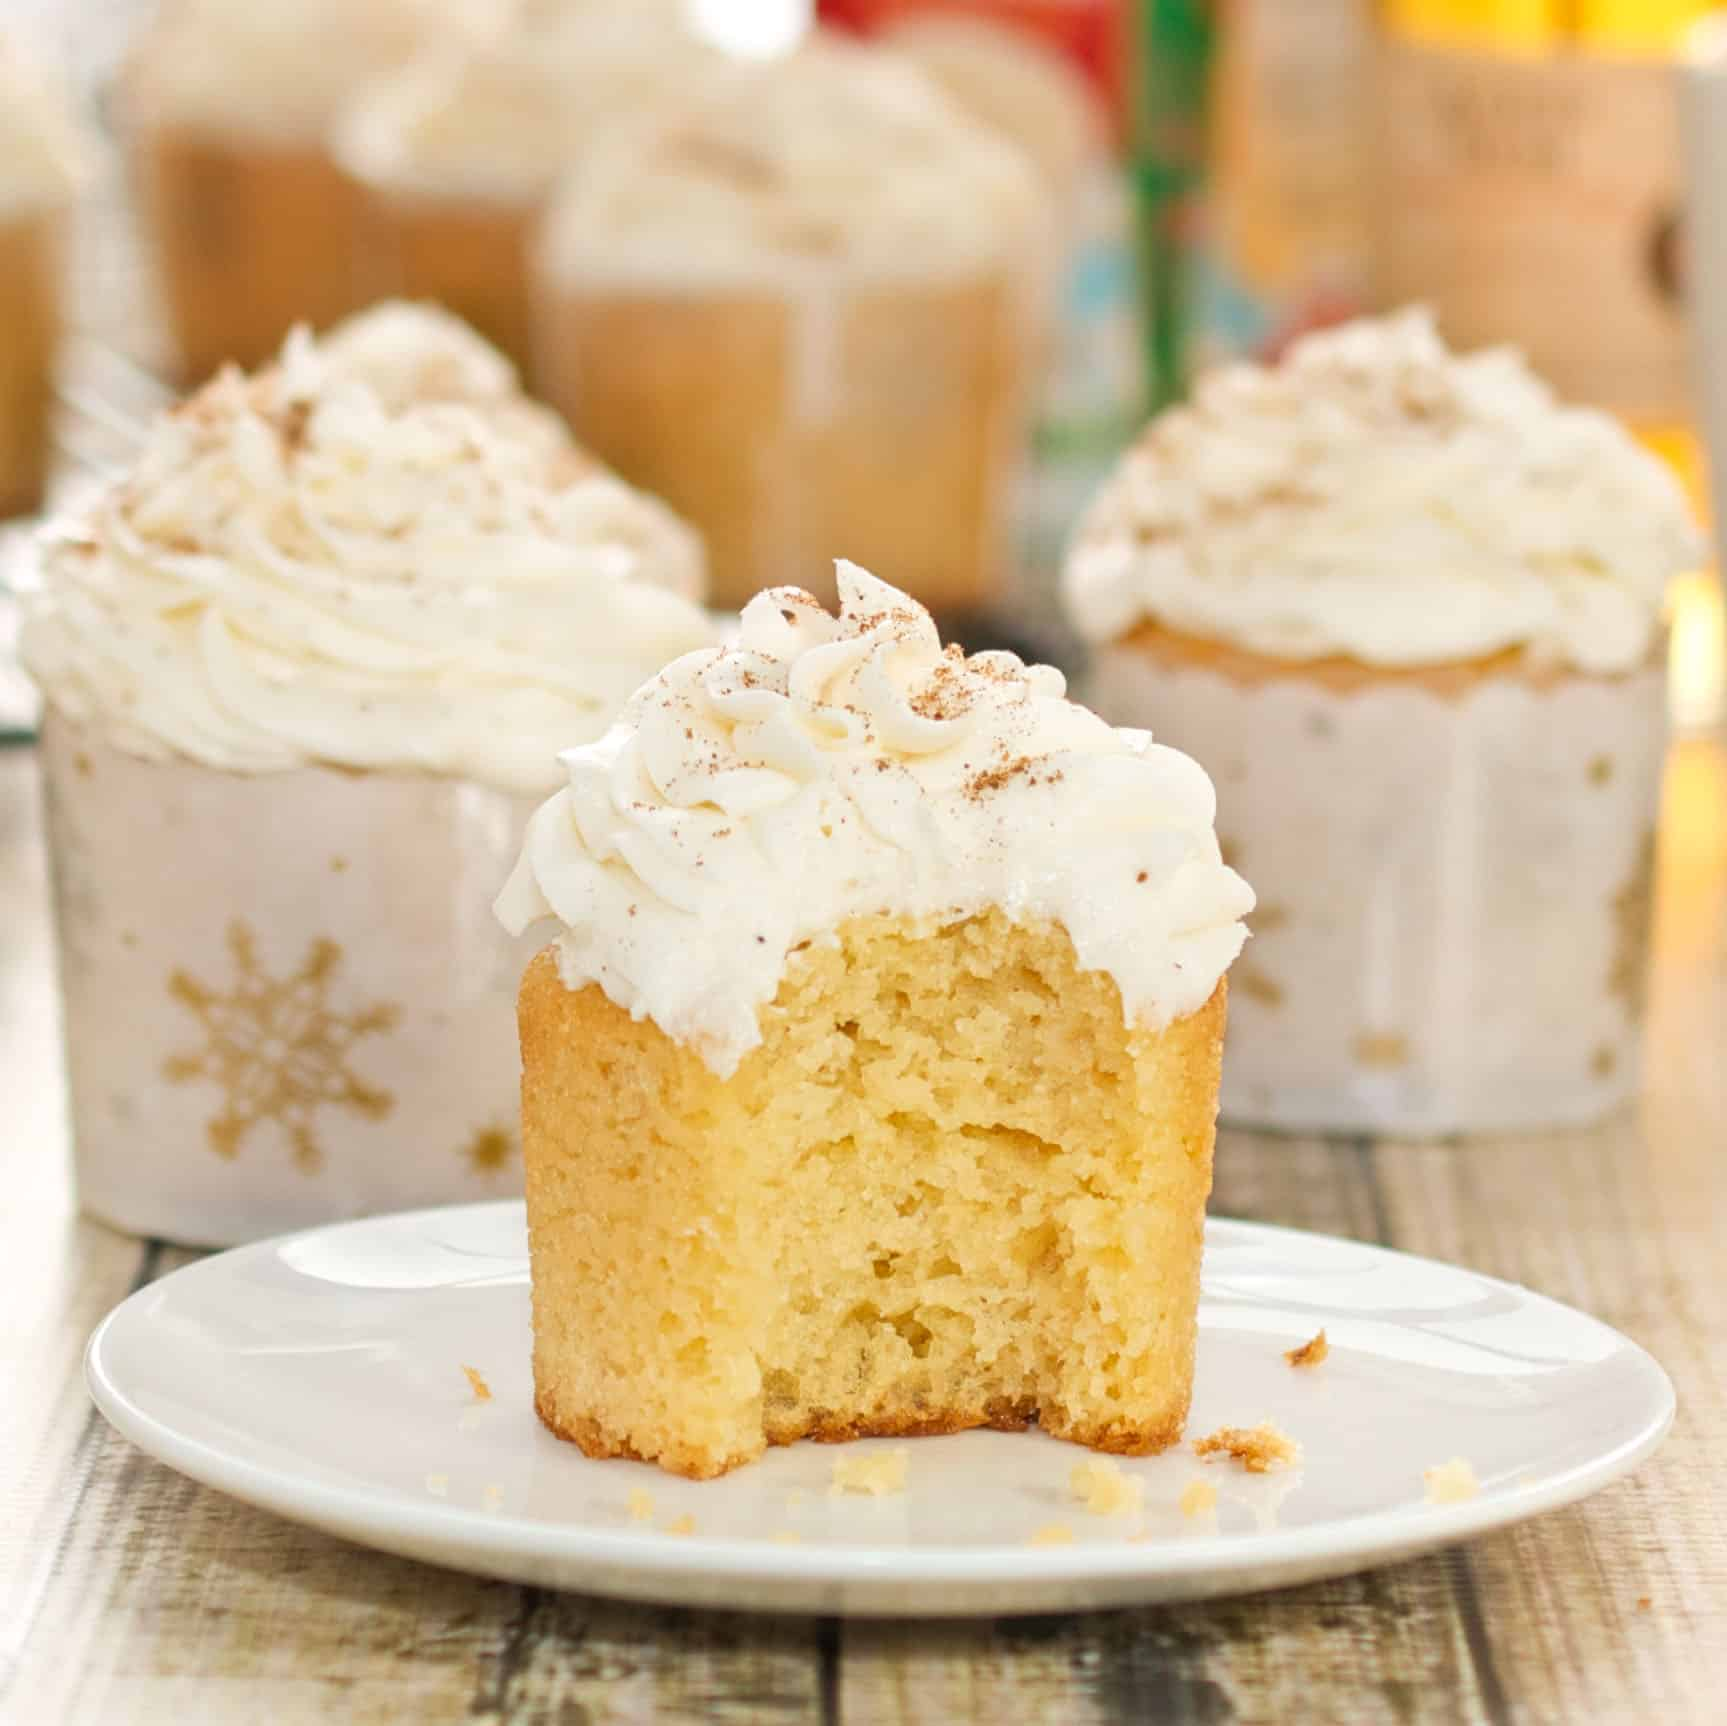 Eggnog Cupcakes with Rum-Infused Frosting